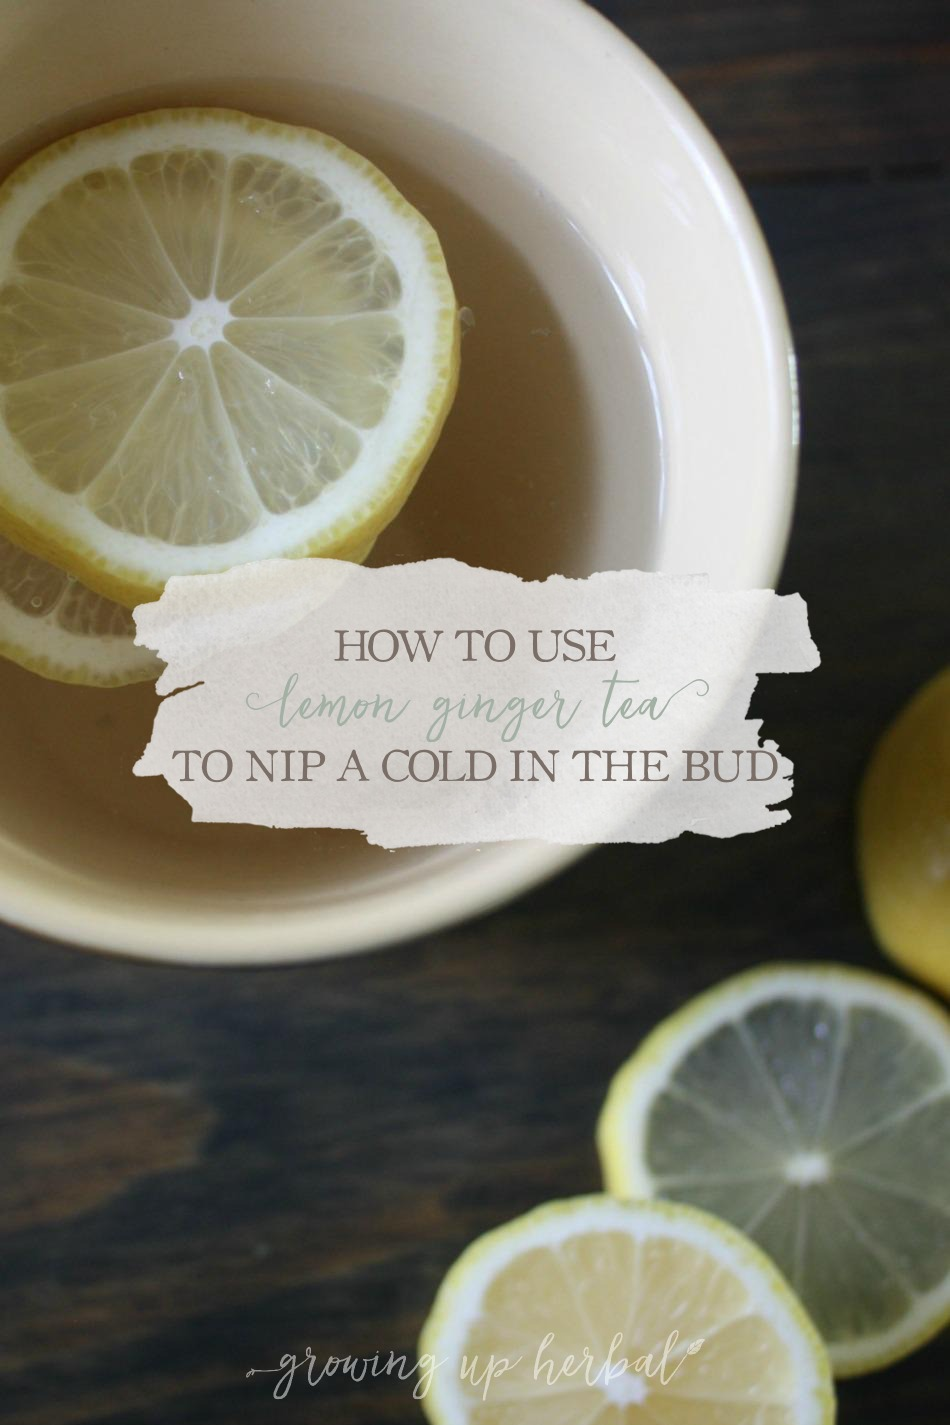 How To Use Lemon Ginger Tea To Nip A Cold In The Bud | Growing Up Herbal | Drink stimulating lemon ginger tea at the first sign of a cold to nip it in the bud!